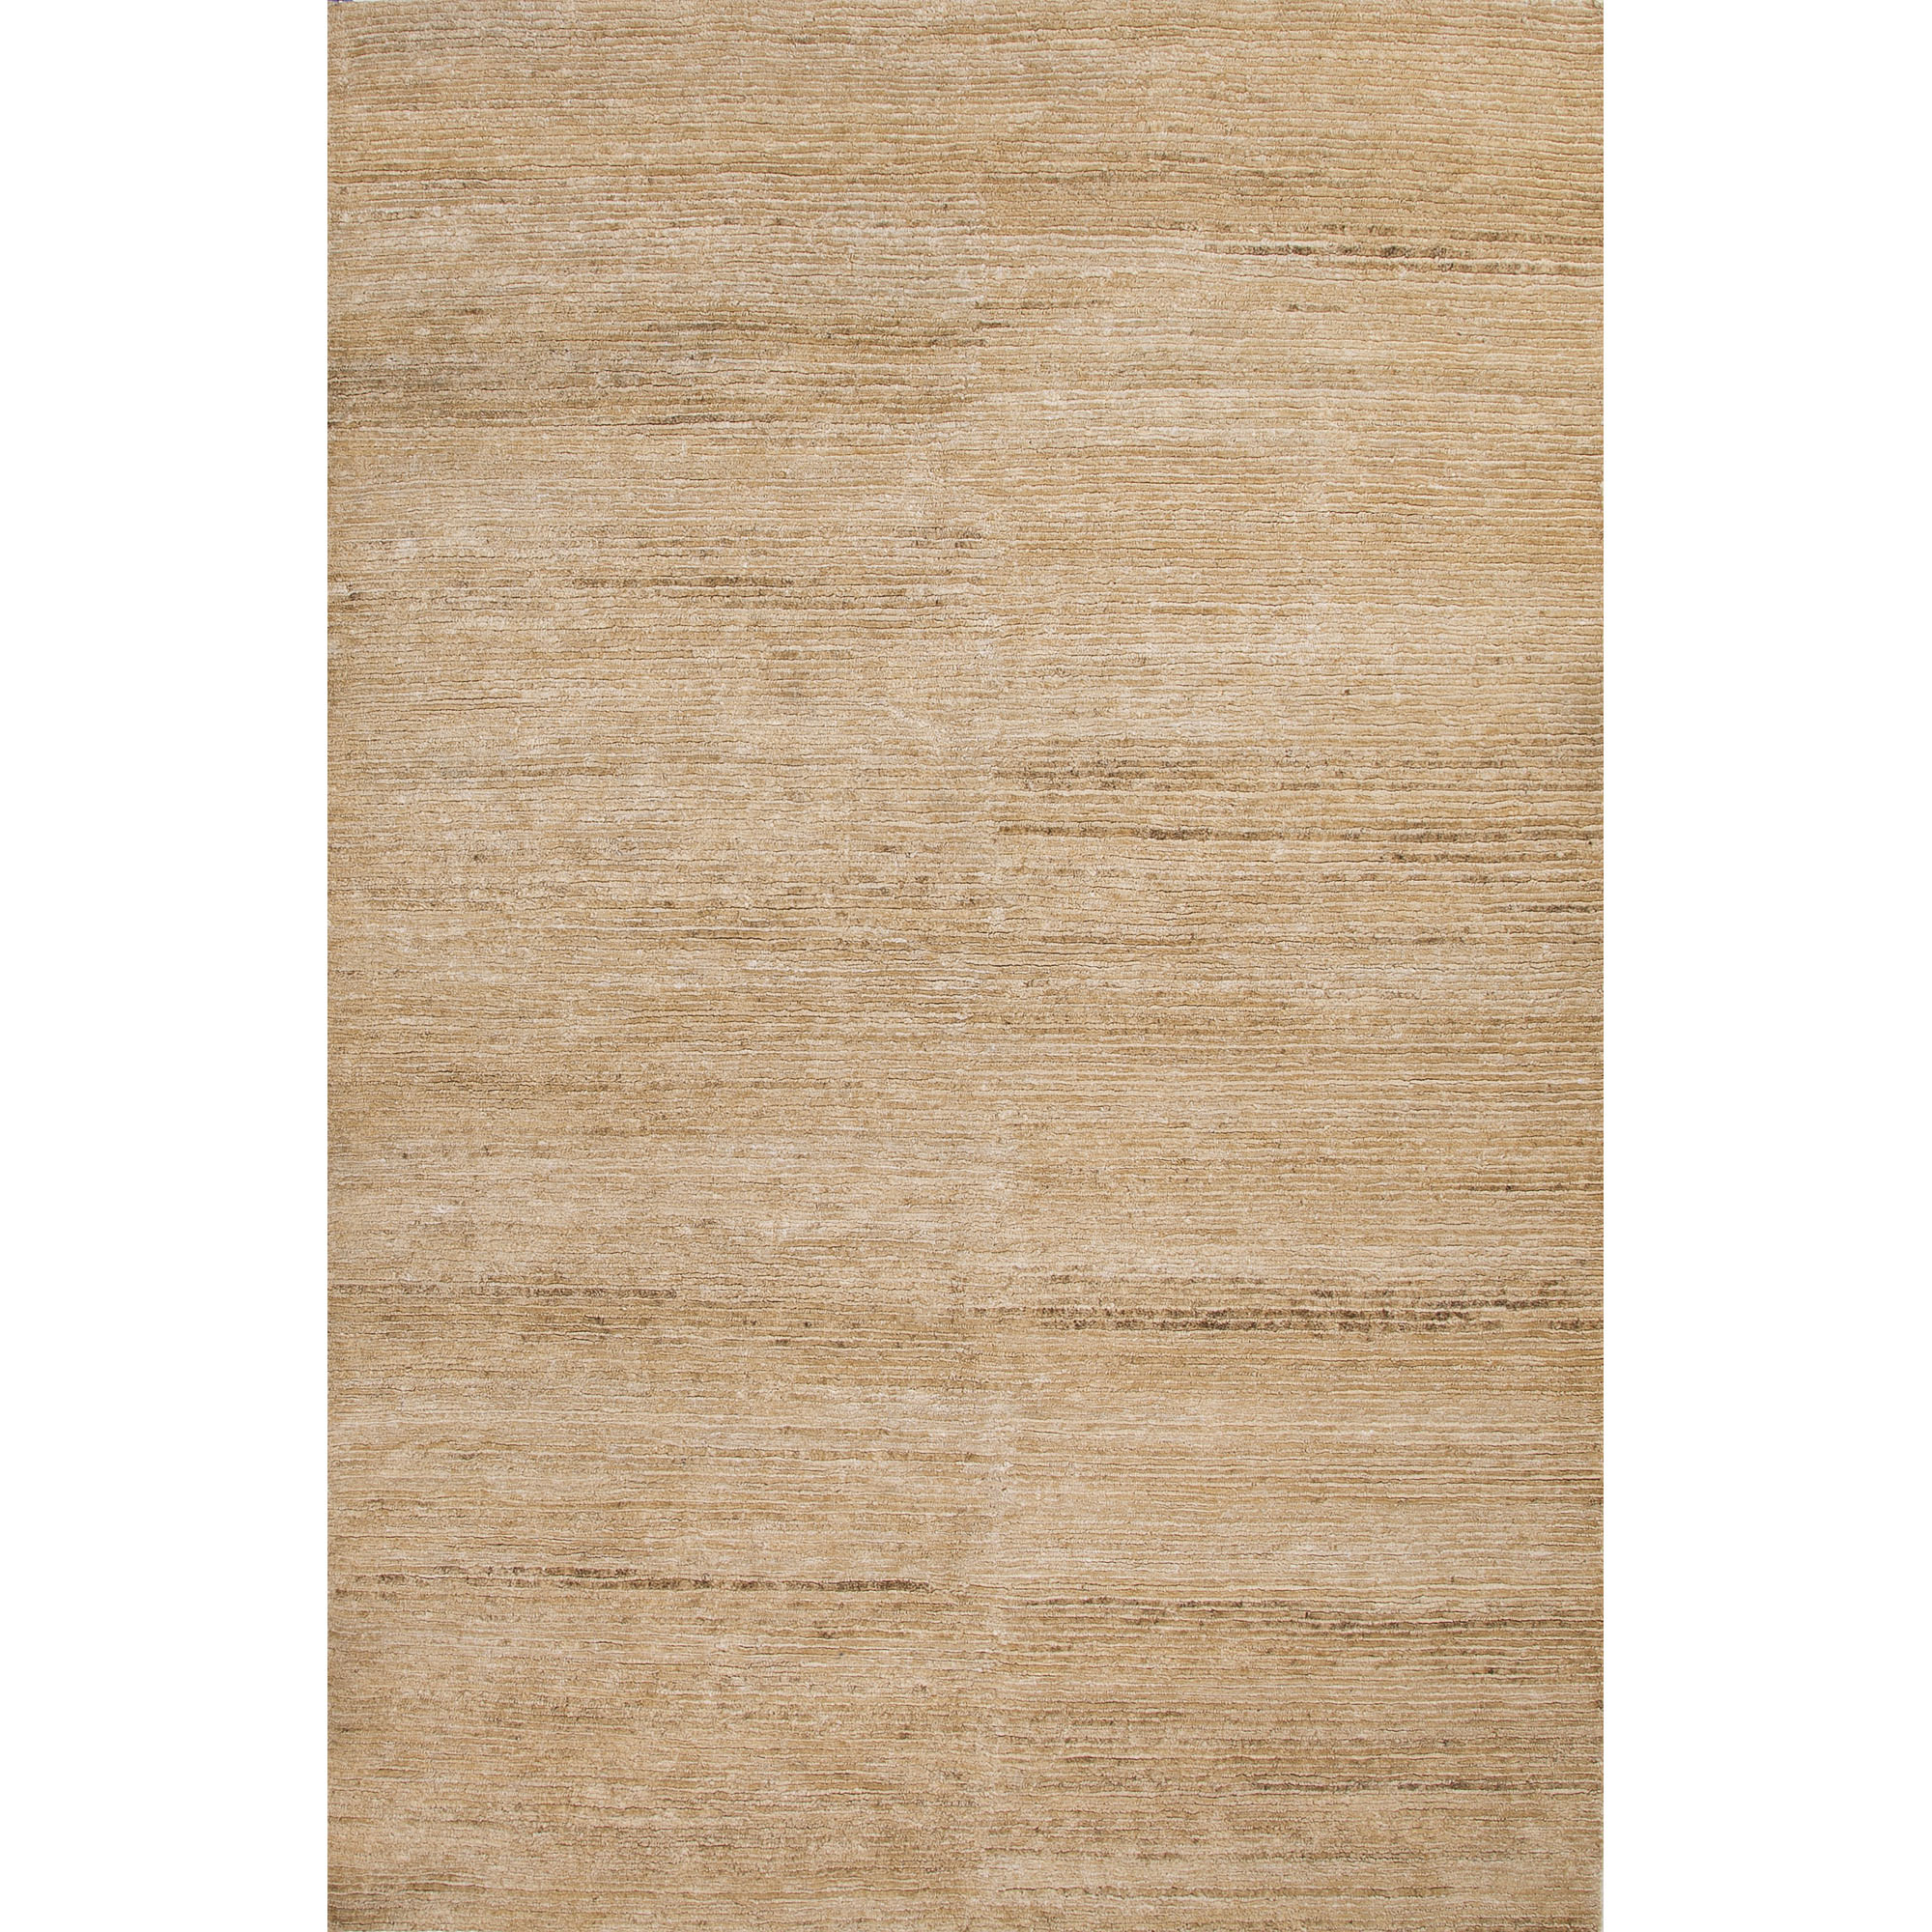 Natural Santo 5 x 8 Rug by JAIPUR Living at Sprintz Furniture